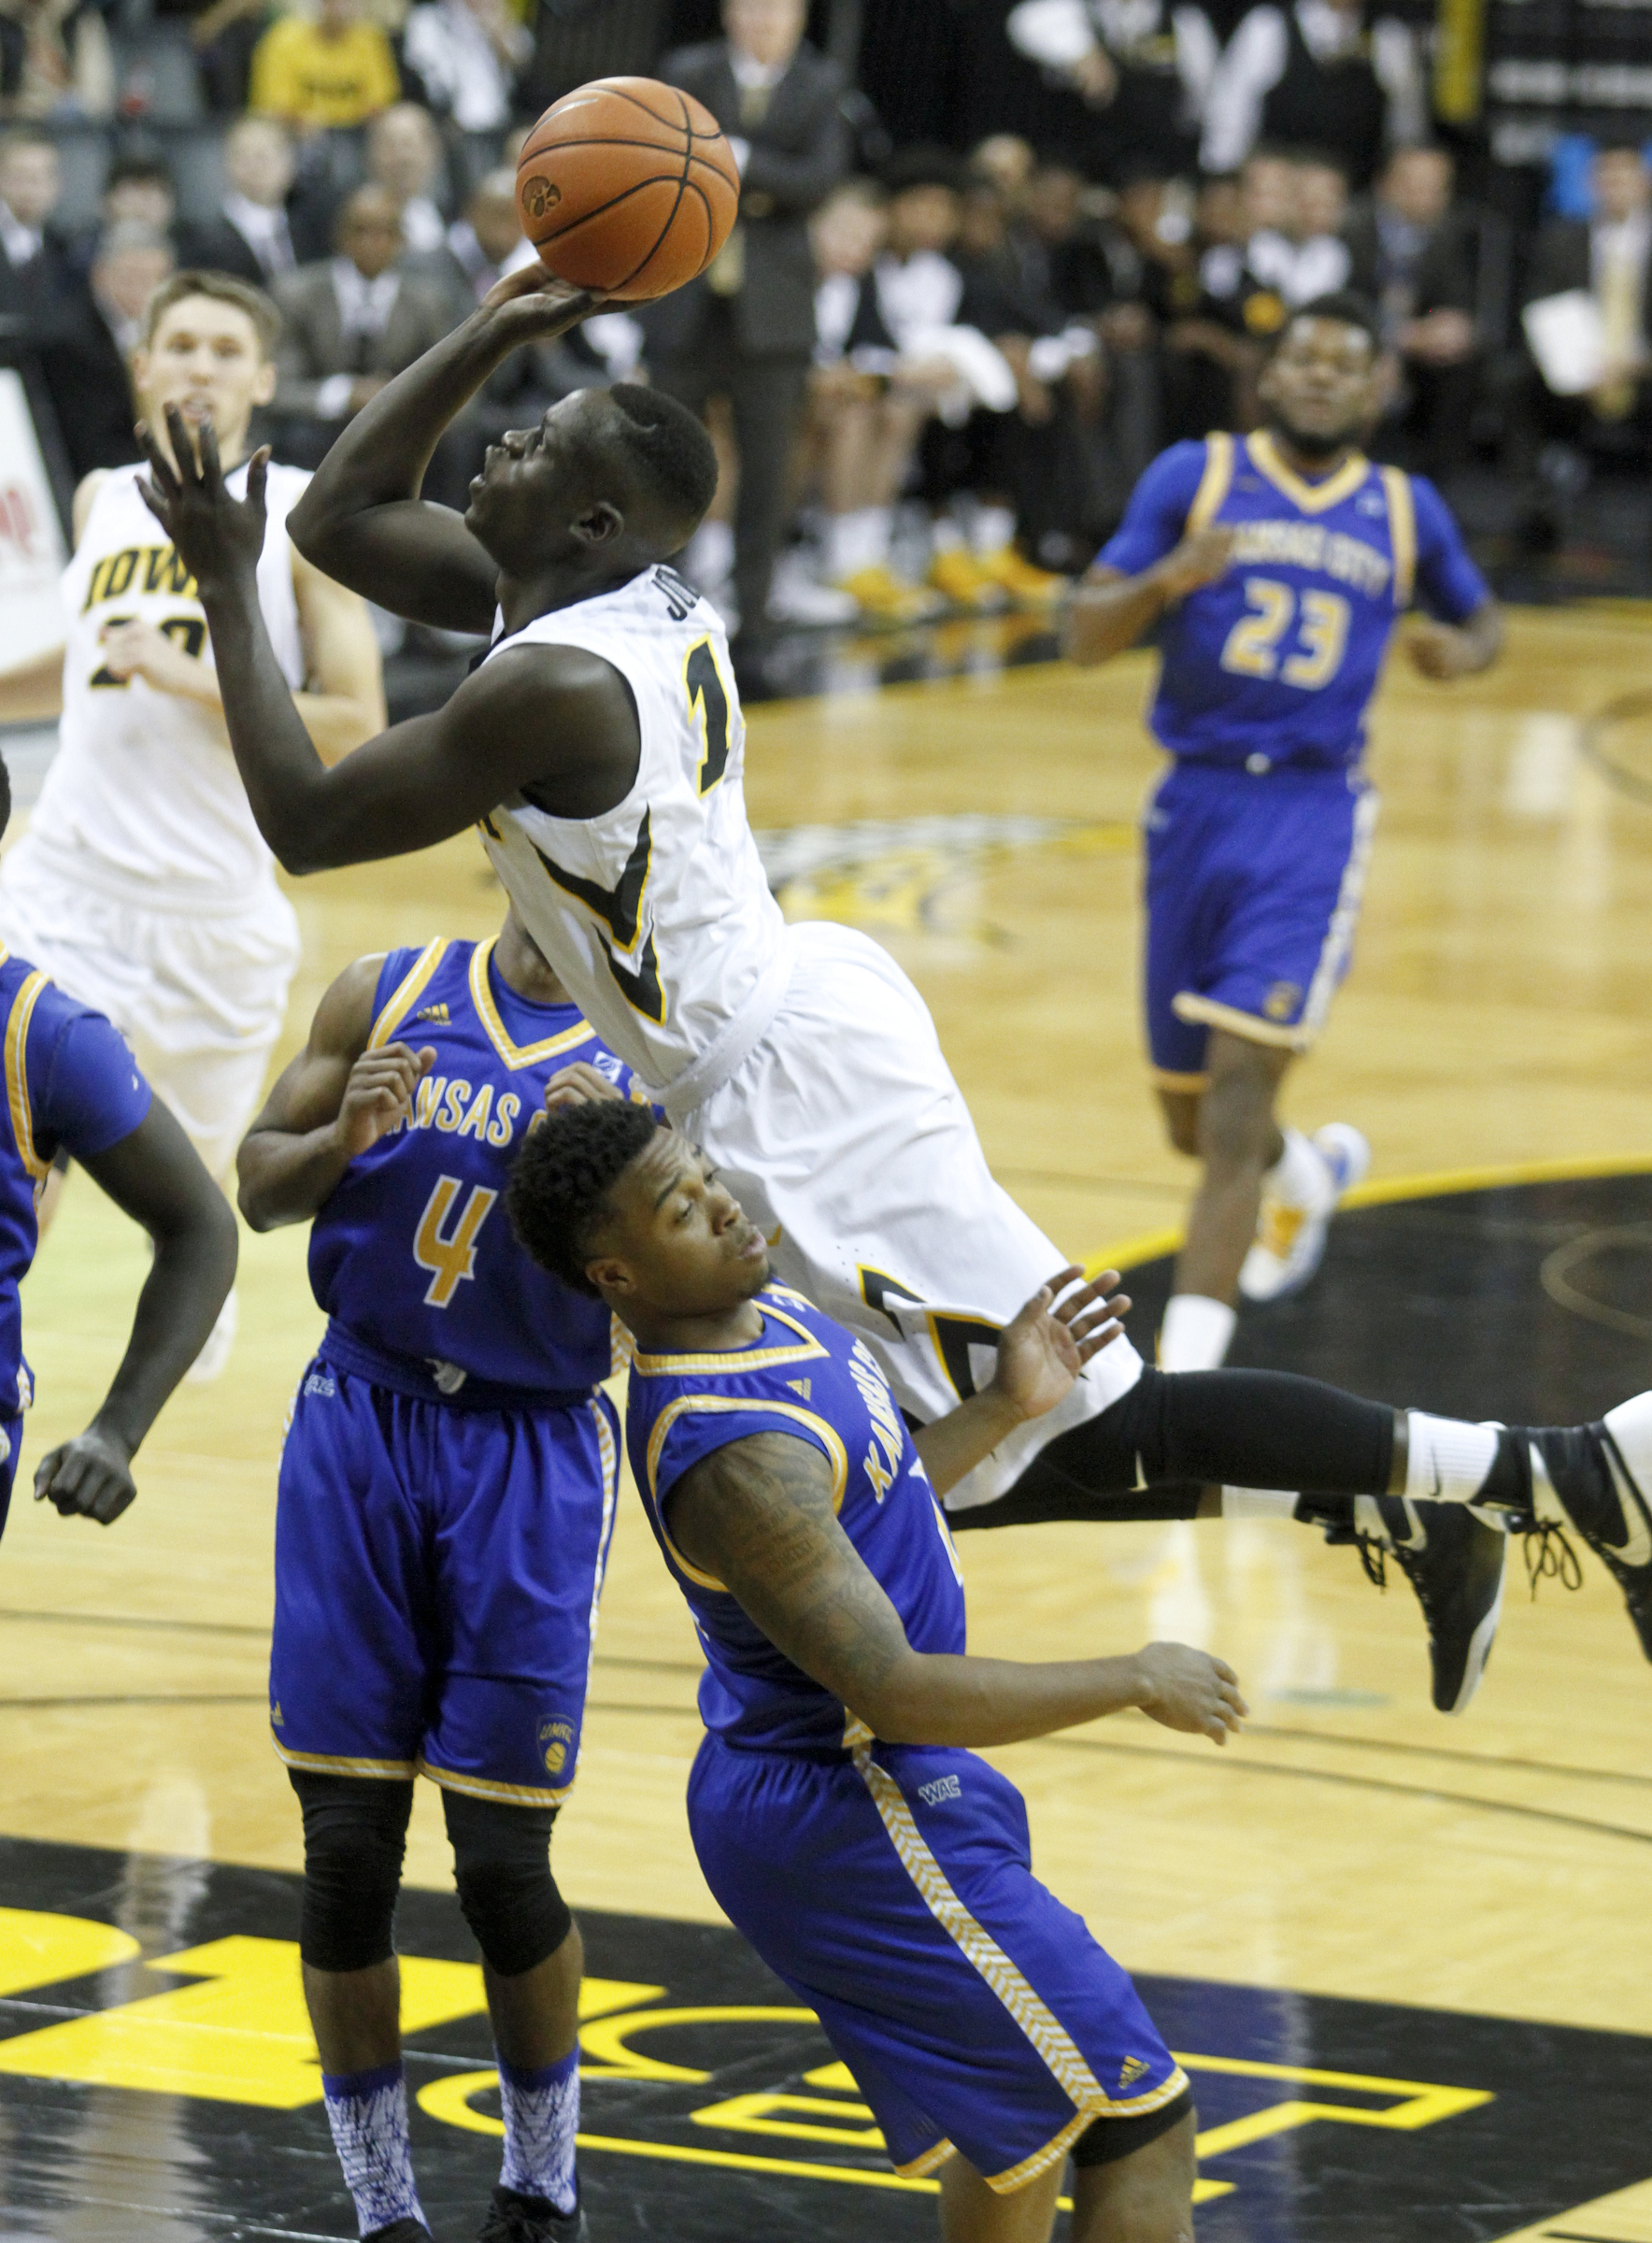 Iowa guard Peter Jok (14) drives to the basket against UMKC guard Martez Harrison (12) during the first half of an NCAA college basketball game in Iowa City, Iowa, Saturday Dec. 5, 2015. (AP Photo/Matthew Holst)